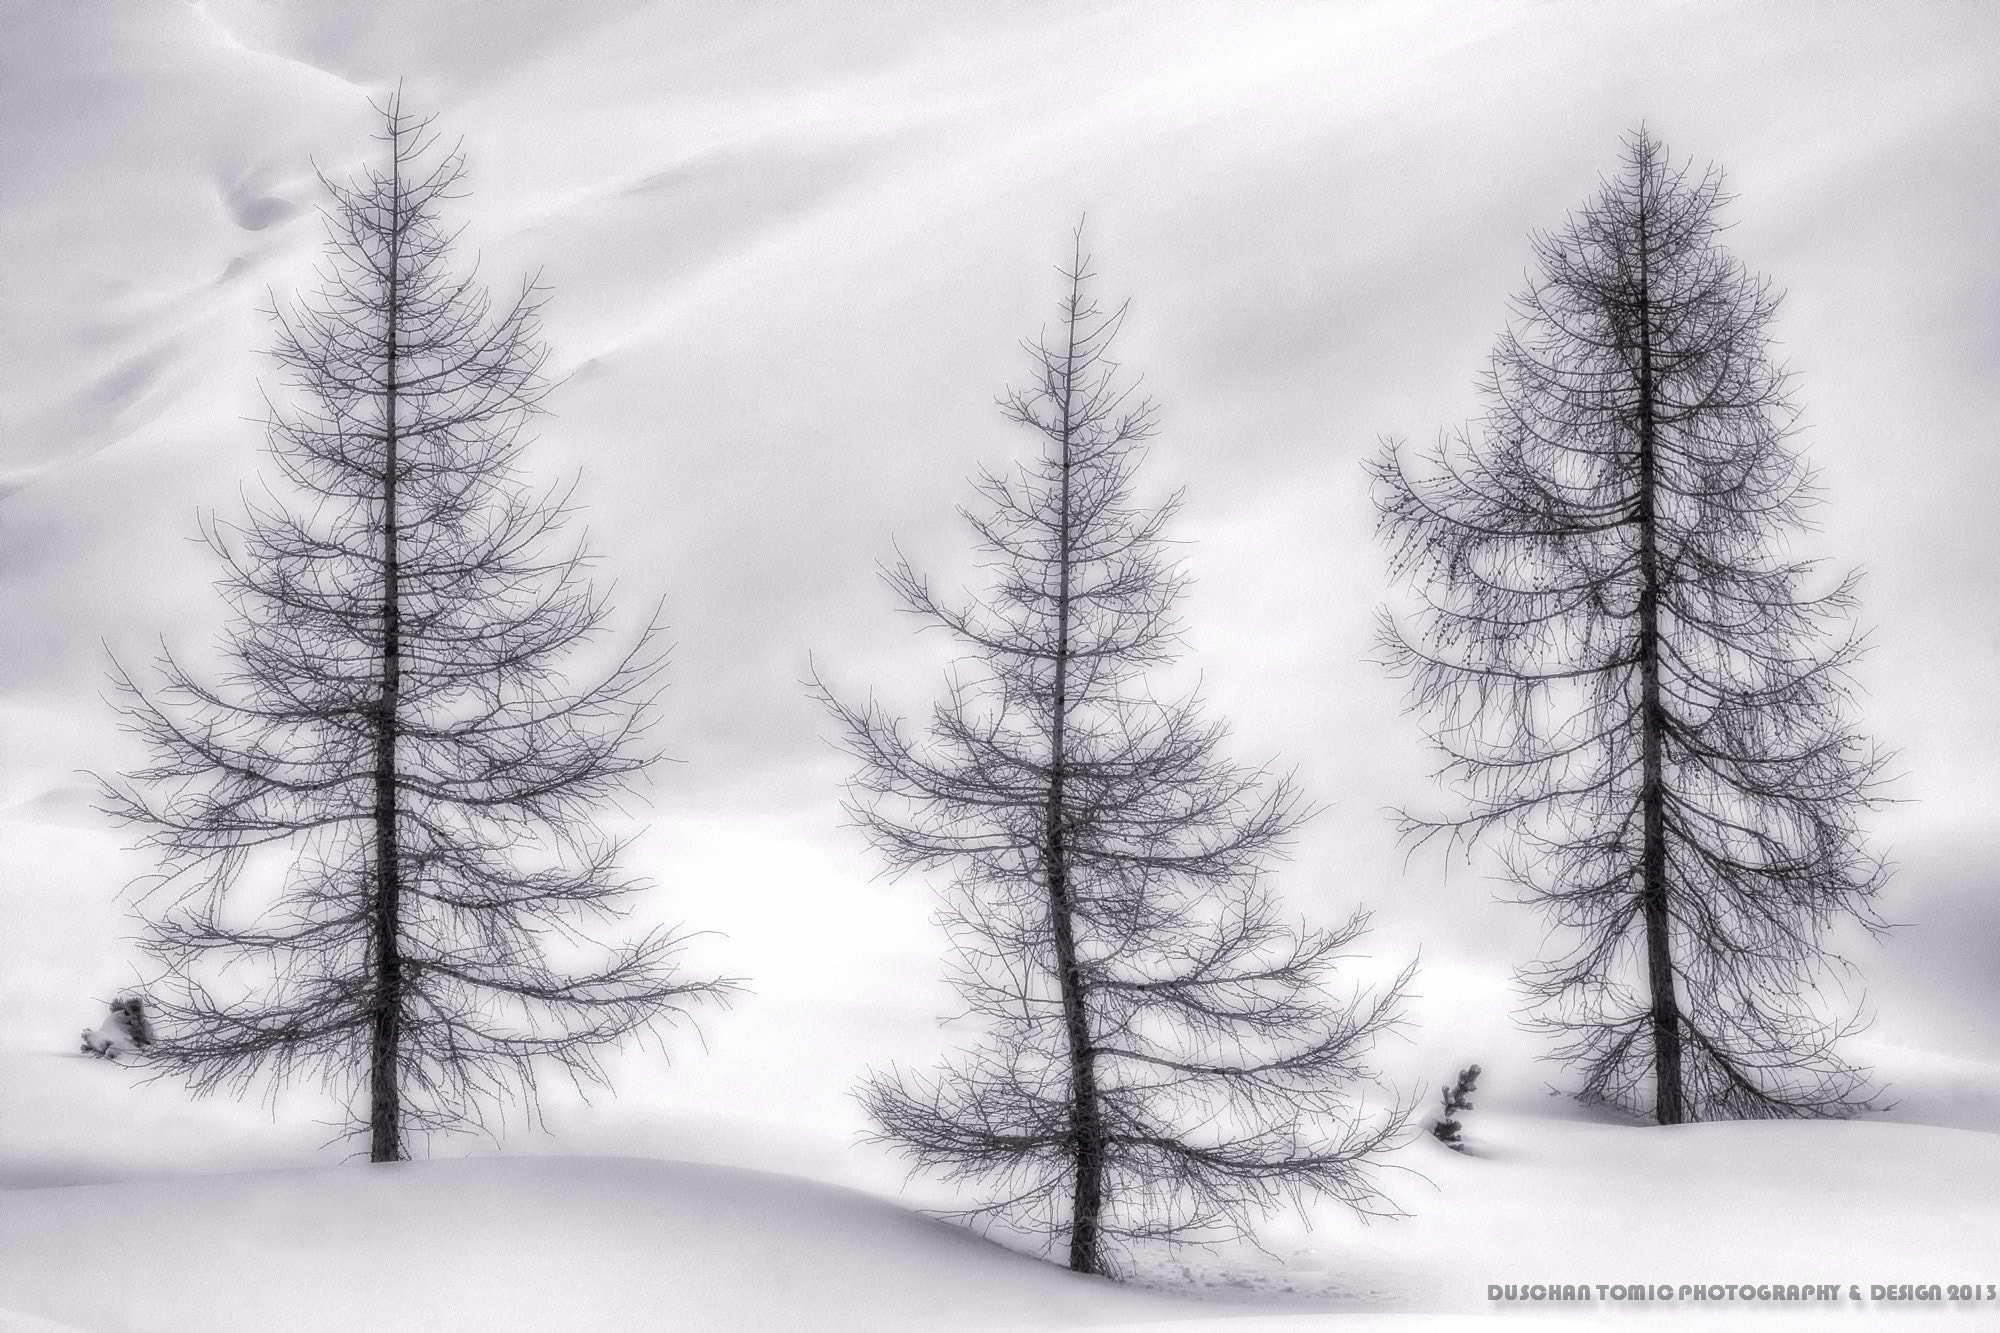 Photograph WE ARE NOT CHRISTMAS TREES! by Duschan Tomic on 500px